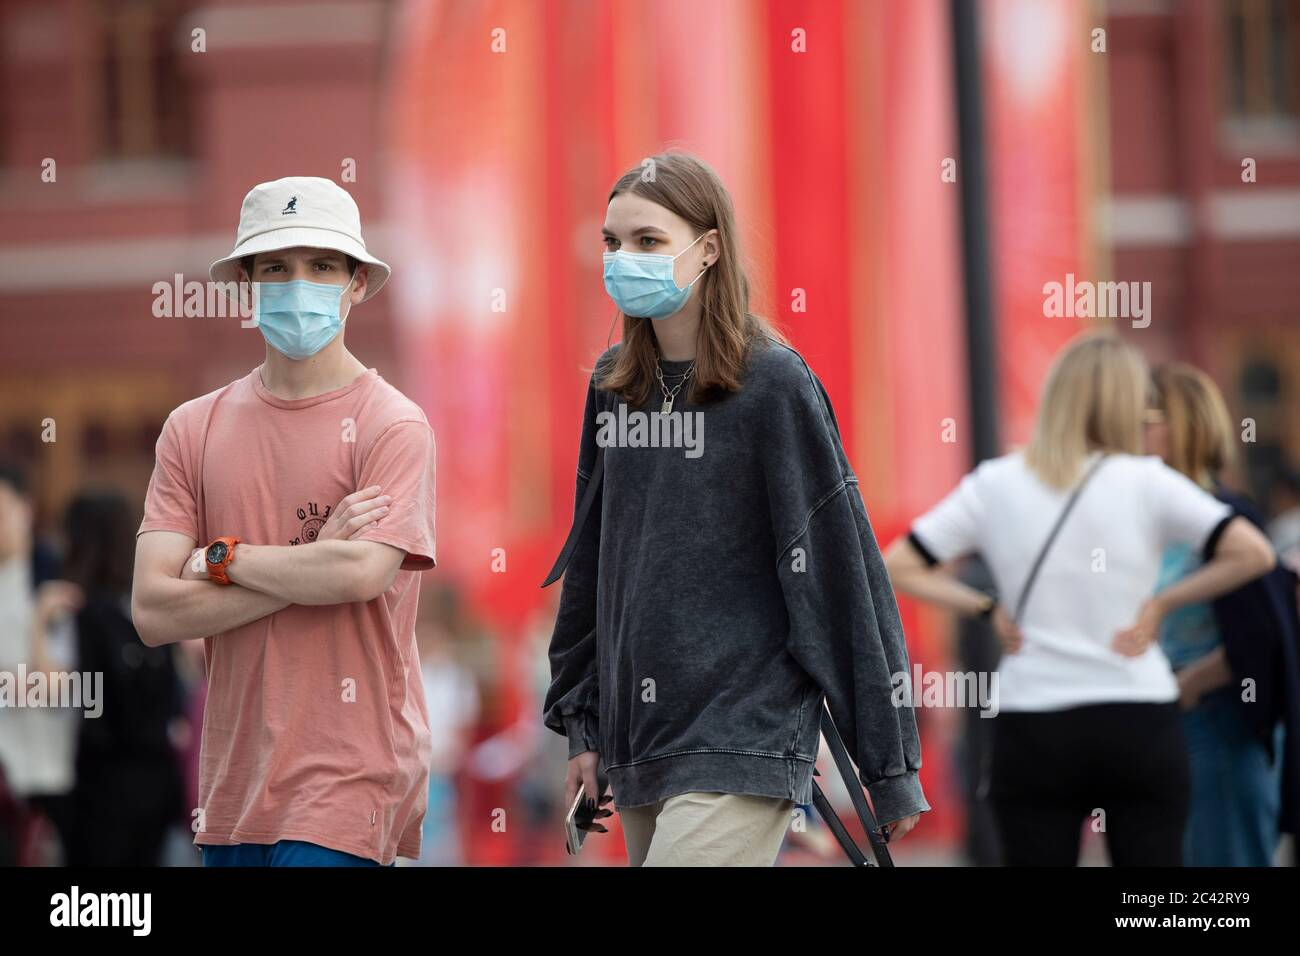 Moscow, Russia. 23rd June, 2020. People wearing face masks walk on a street in Moscow, Russia, on June 23, 2020. Russia recorded 7,425 COVID-19 cases in the past 24 hours, taking its total to 599,705, the country's coronavirus response center said in a statement Tuesday. Credit: Alexander Zemlianichenko Jr/Xinhua/Alamy Live News Stock Photo